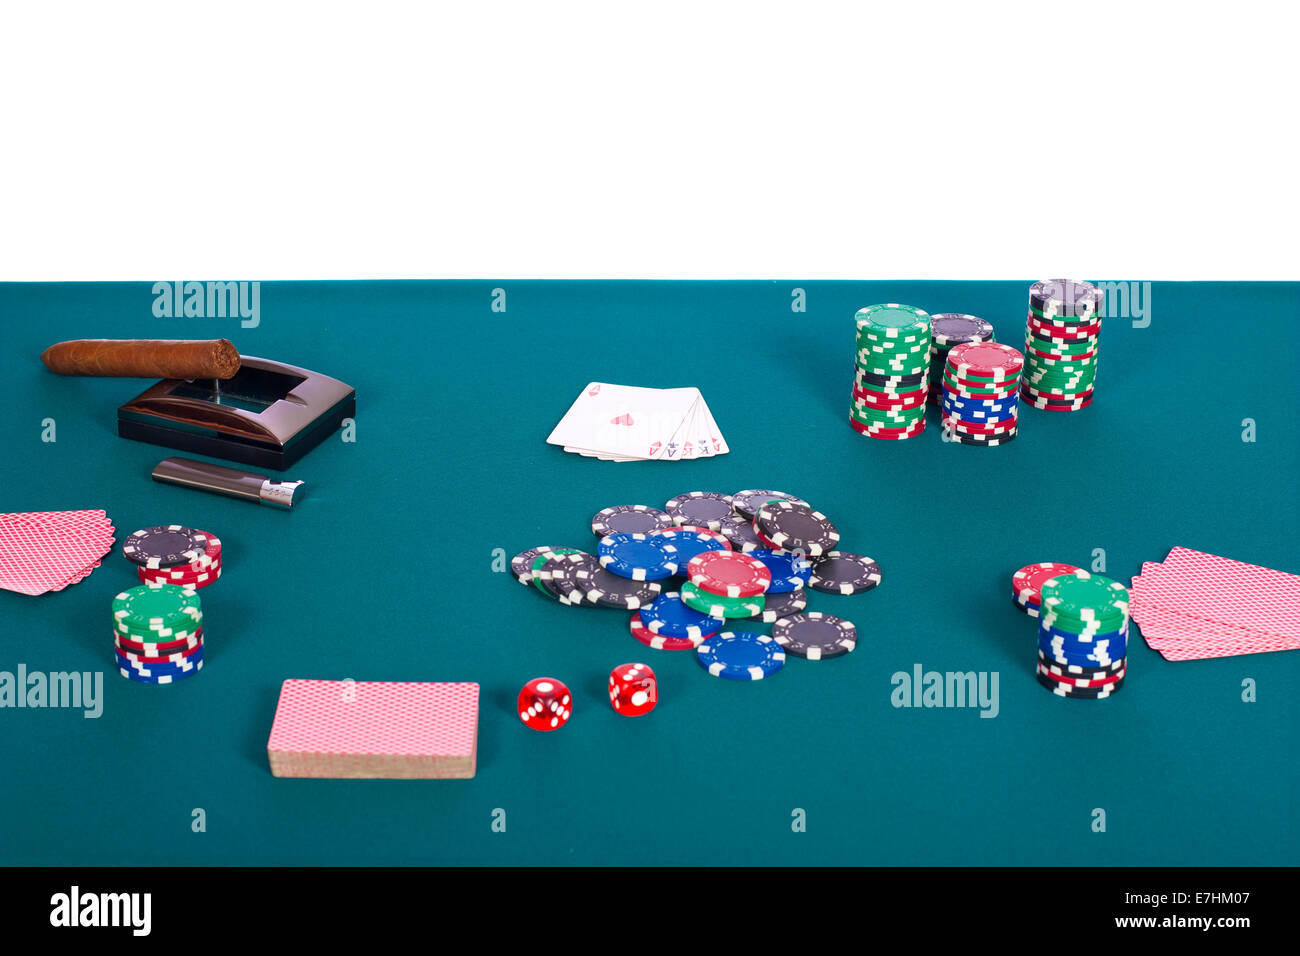 Value Poker Chips On A Green Felt Poker Table Background And One